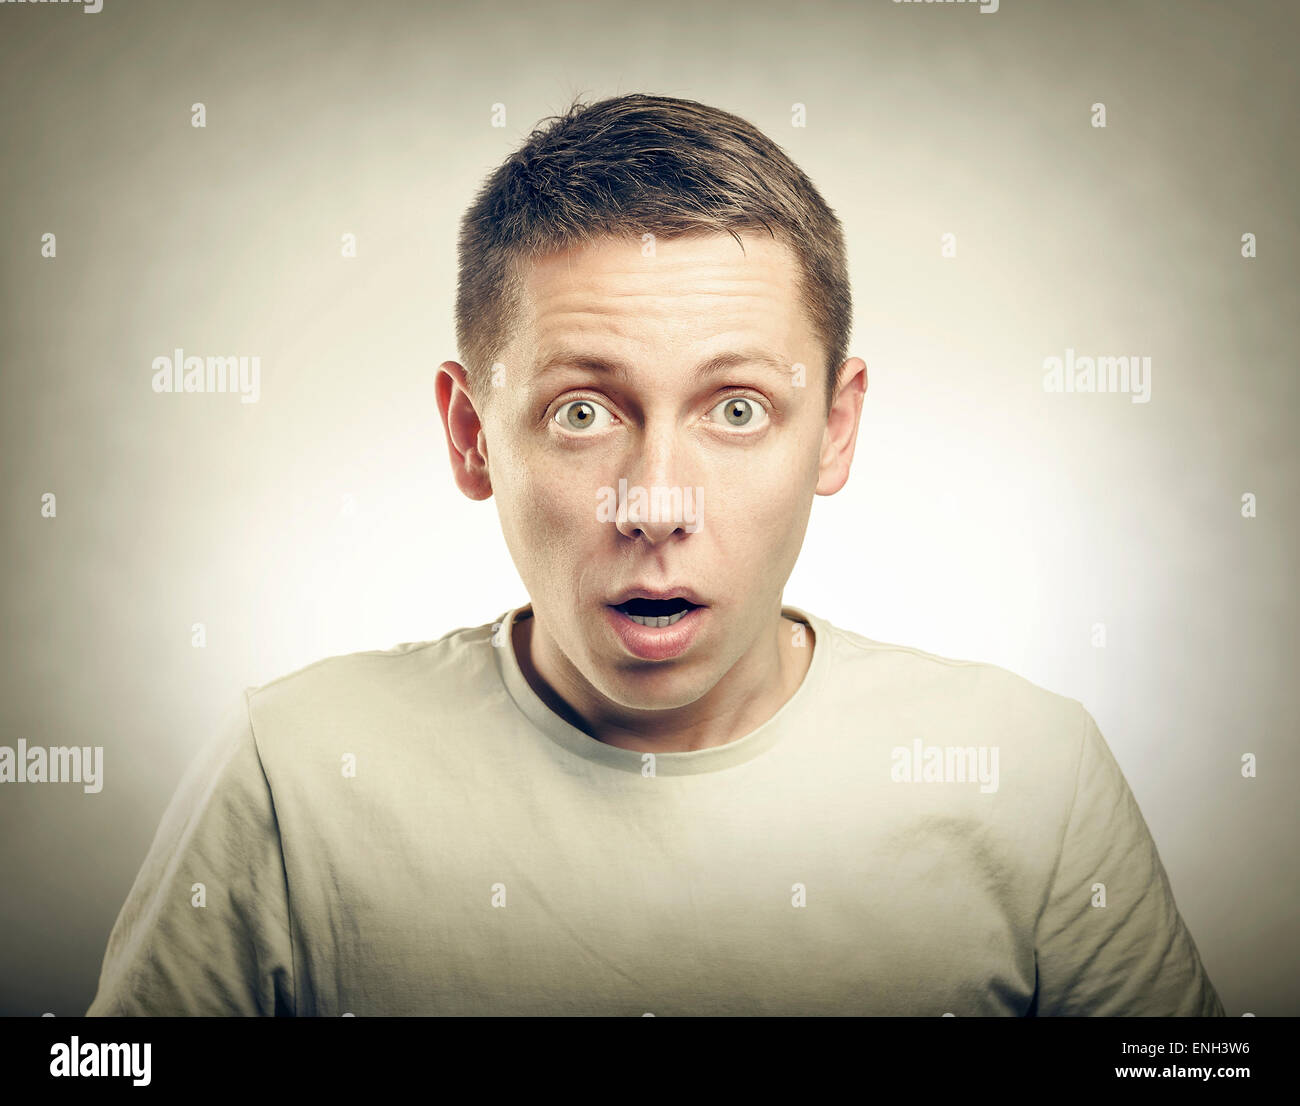 Surprised Young Man. - Stock Image